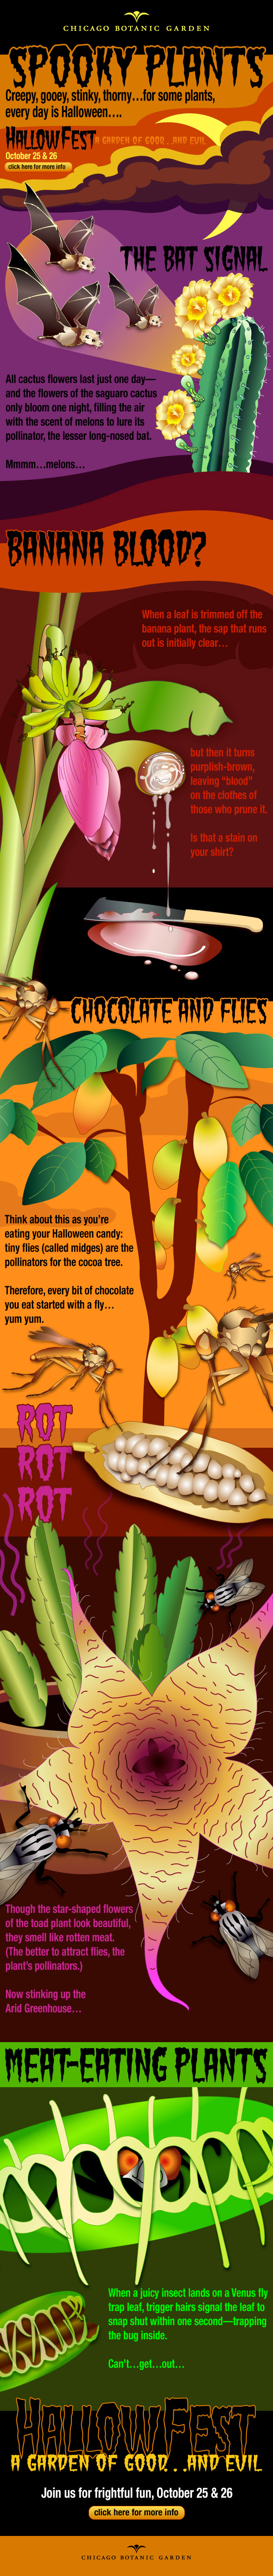 Spookygraphic: an infographic about spooky plants